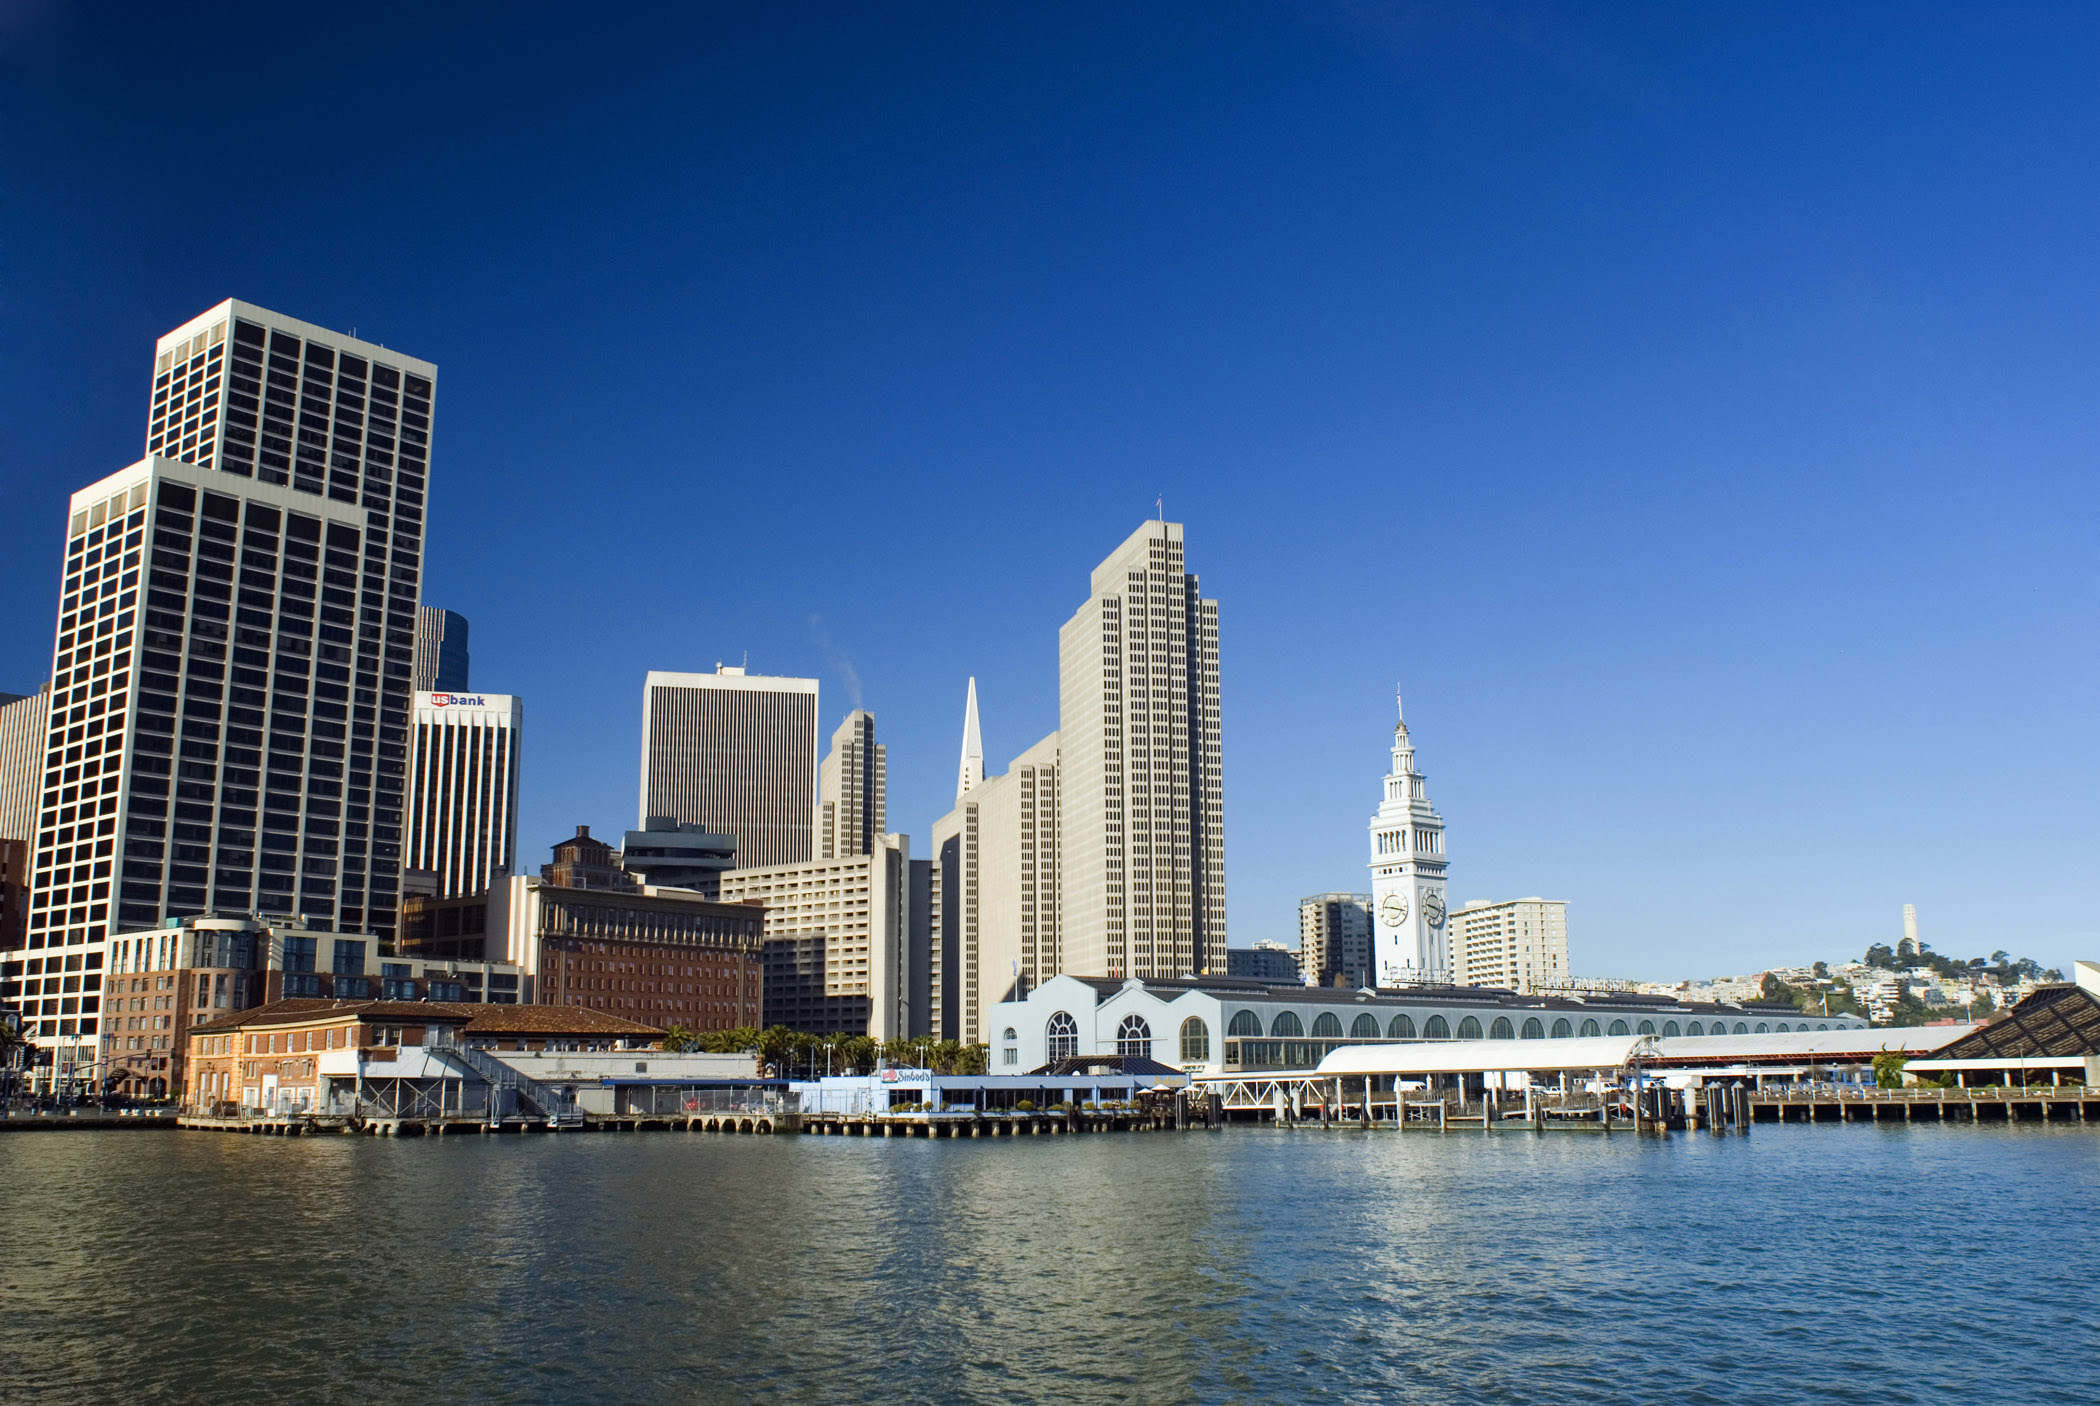 View of the city skyline and waterfront pier near the Embarcadero in San Francisco viewed across the water